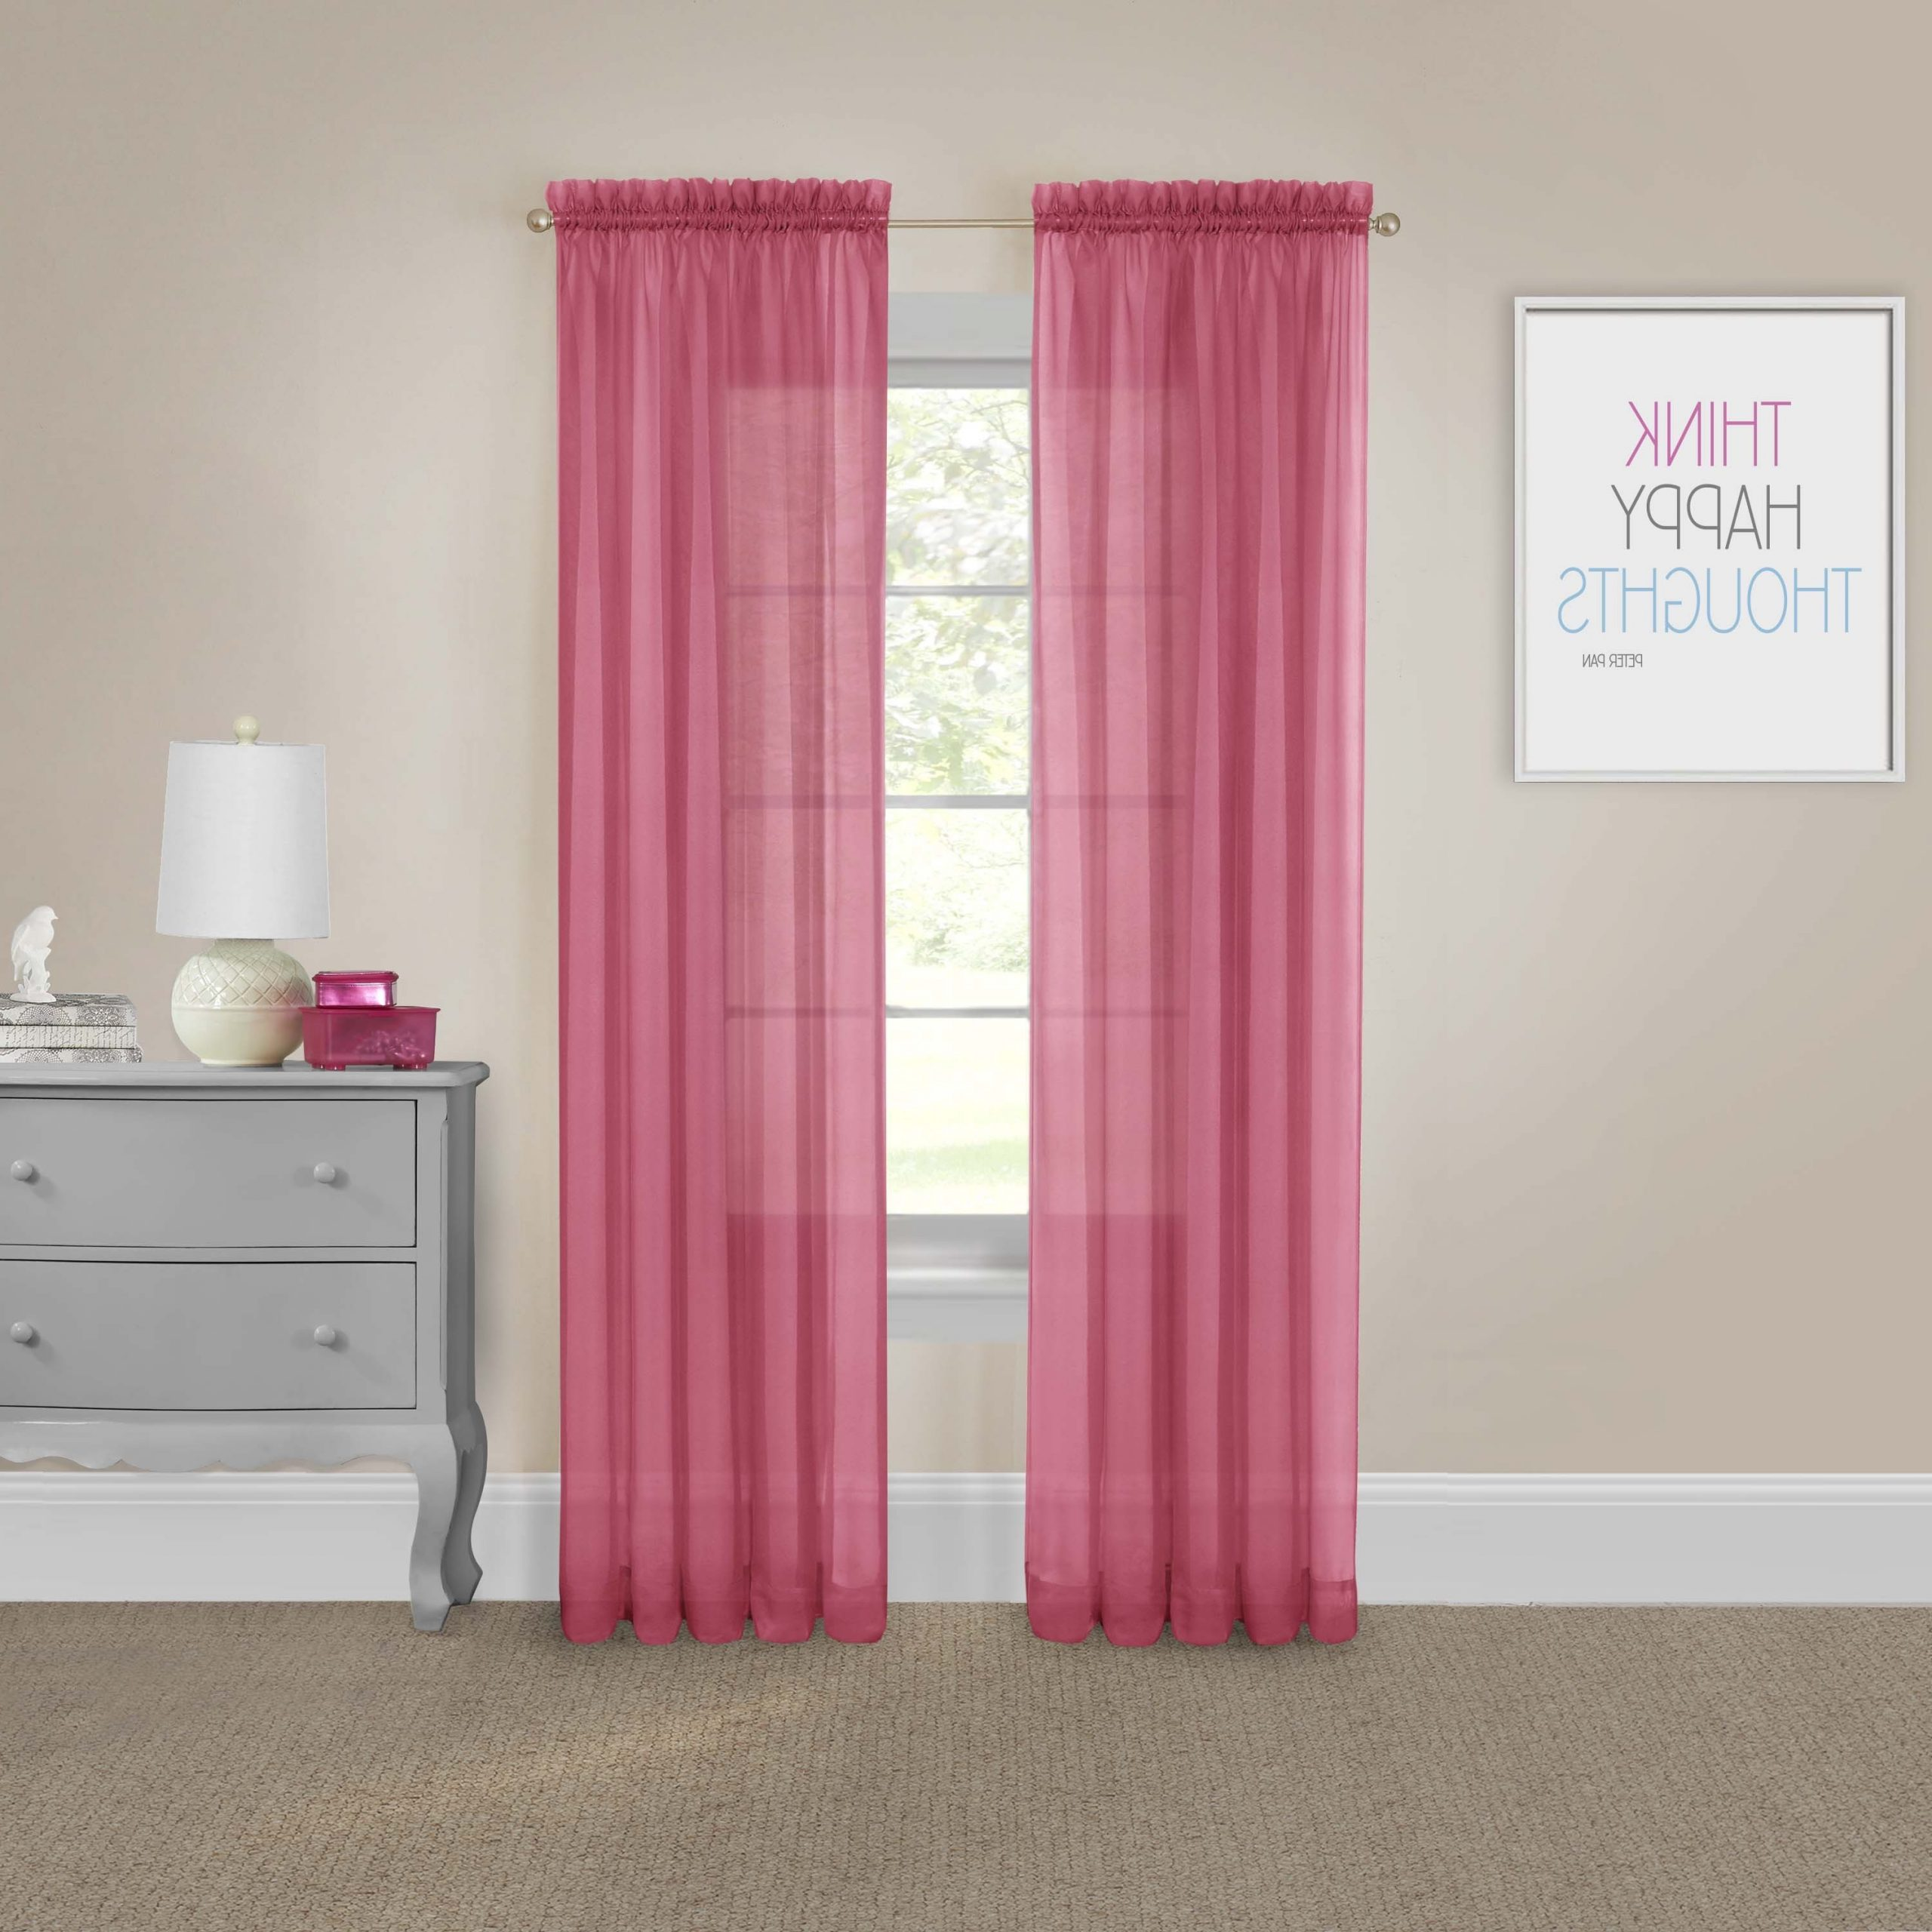 Pairs To Go Victoria Voile Curtain Panel Pair Within Best And Newest Pairs To Go Victoria Voile Curtain Panel Pairs (View 2 of 20)